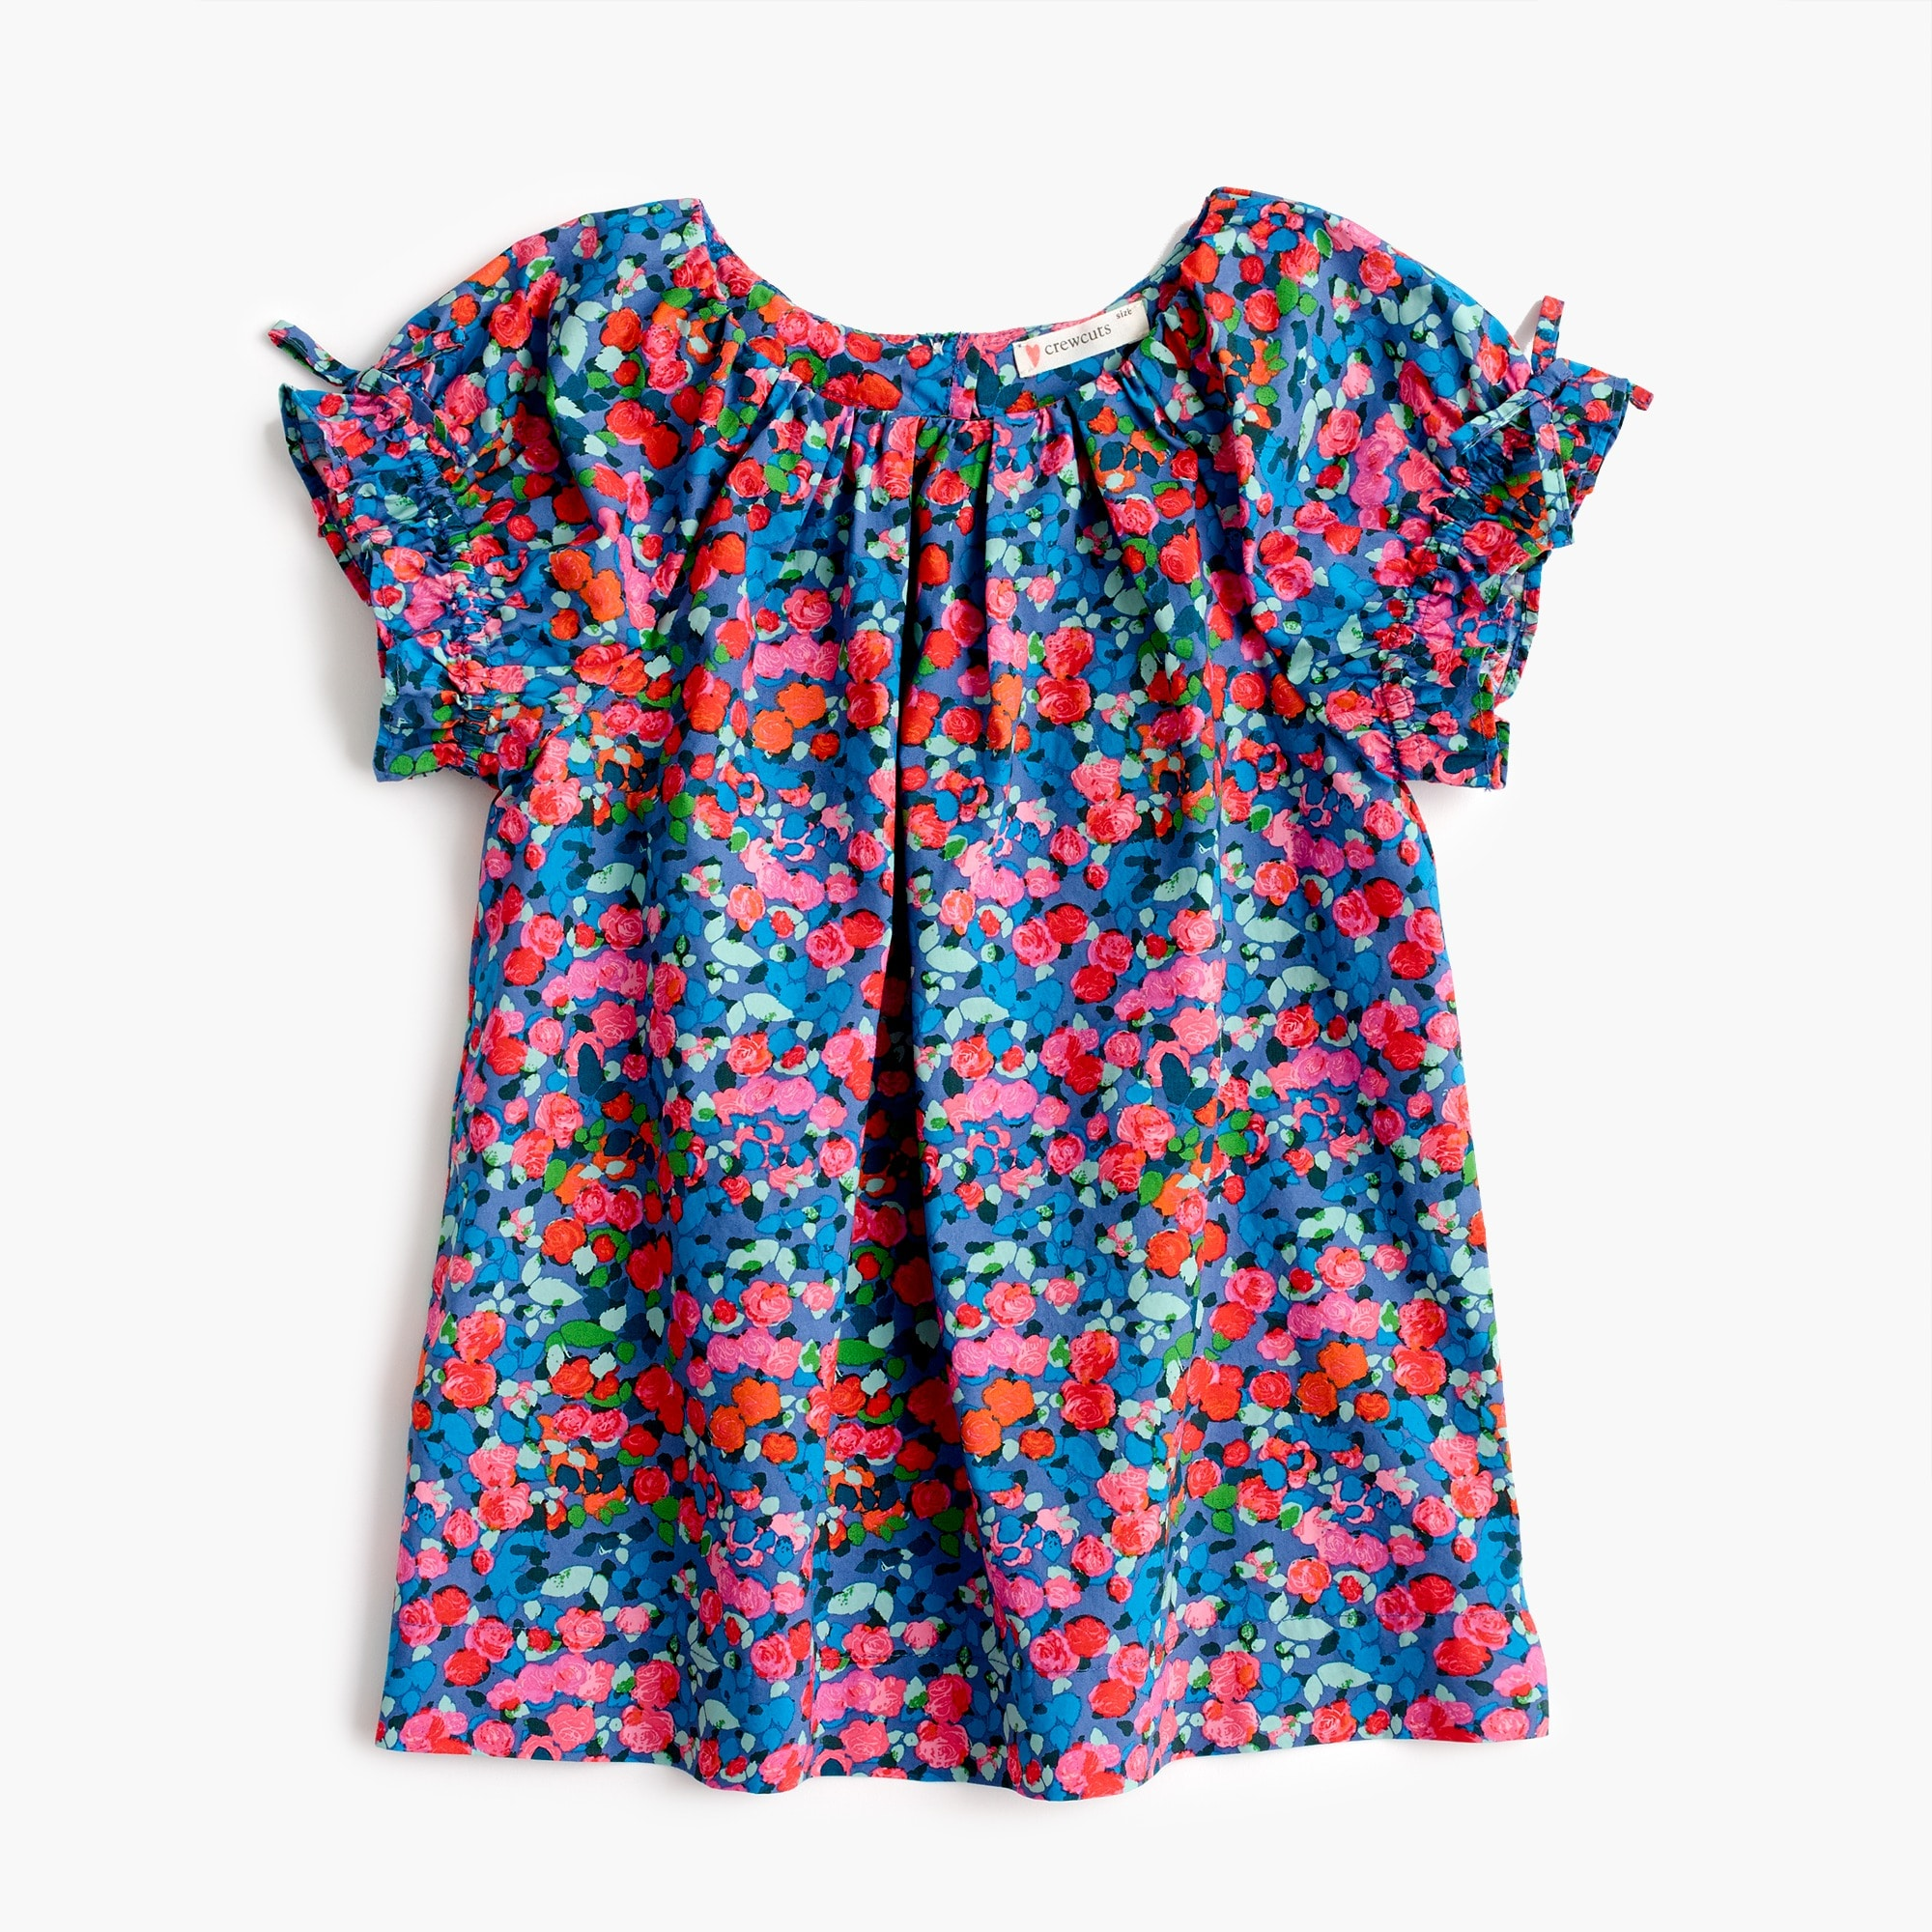 girls' gathered-sleeve top in garden floral : girl novelty shirts